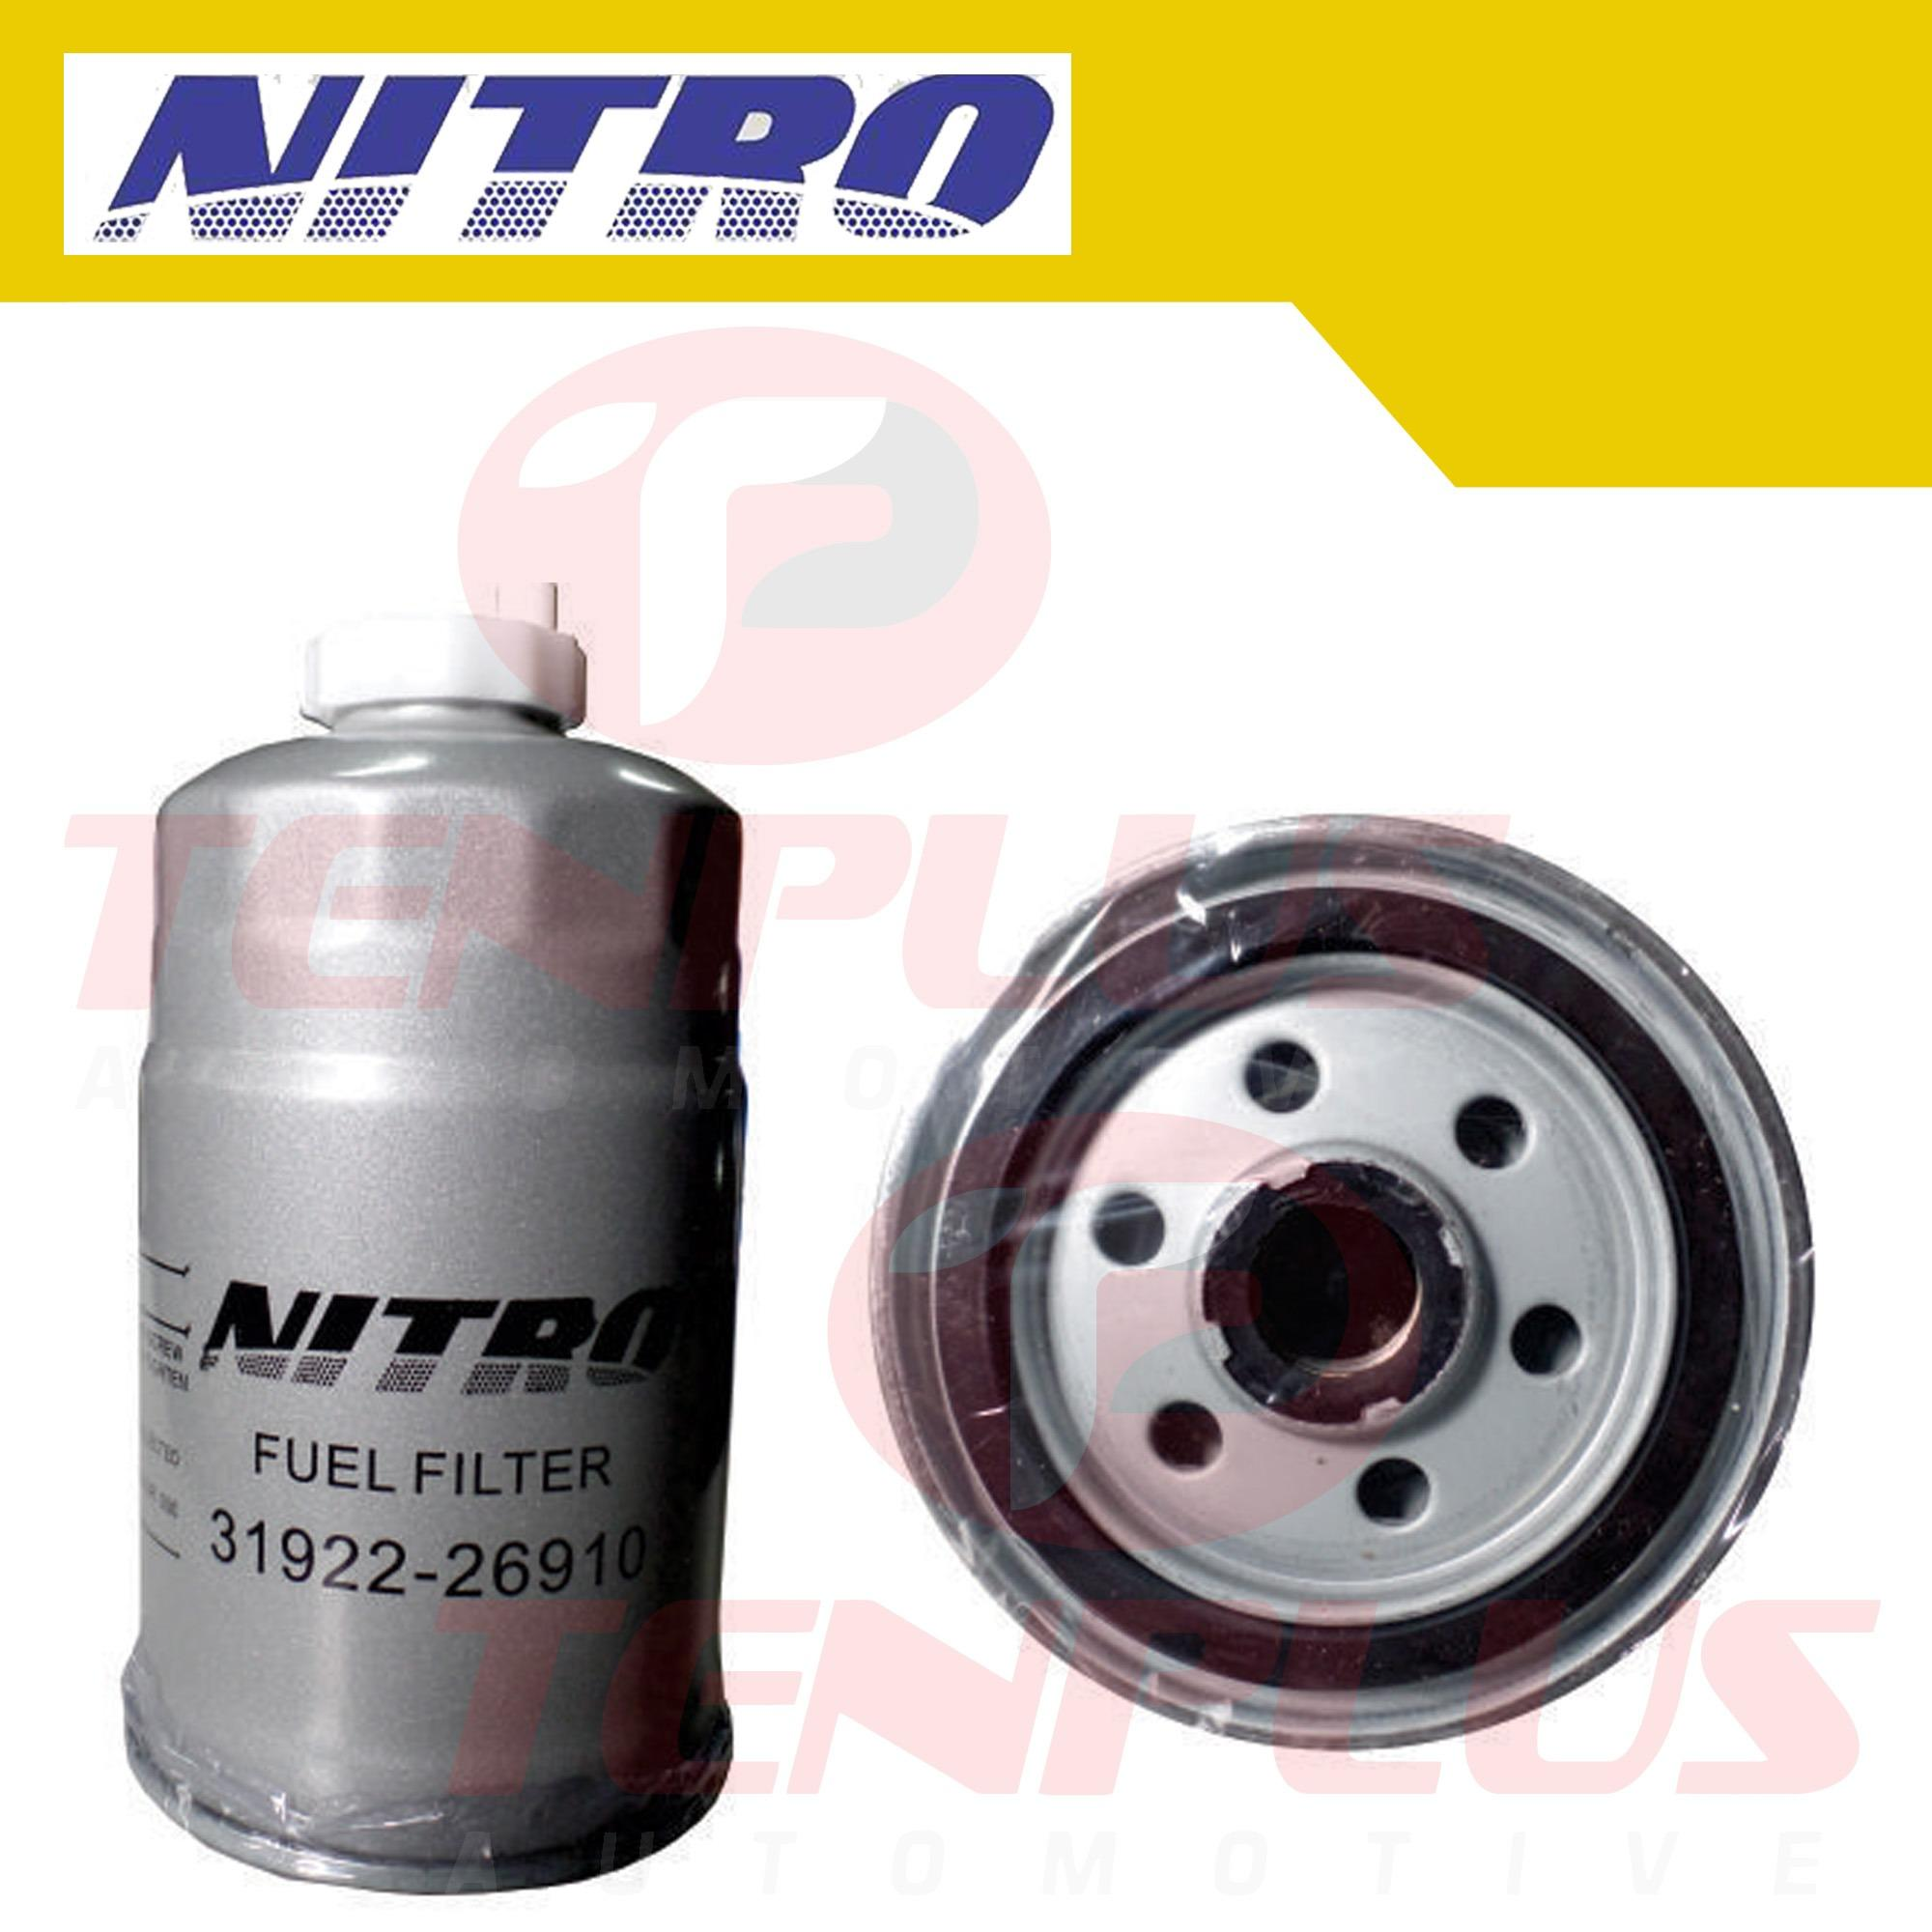 Fuel Filter For Sale Gas Online Brands Prices Reviews In Gm Filters Nitro Hyundai Starex Crdi 02 06 Sorento 03